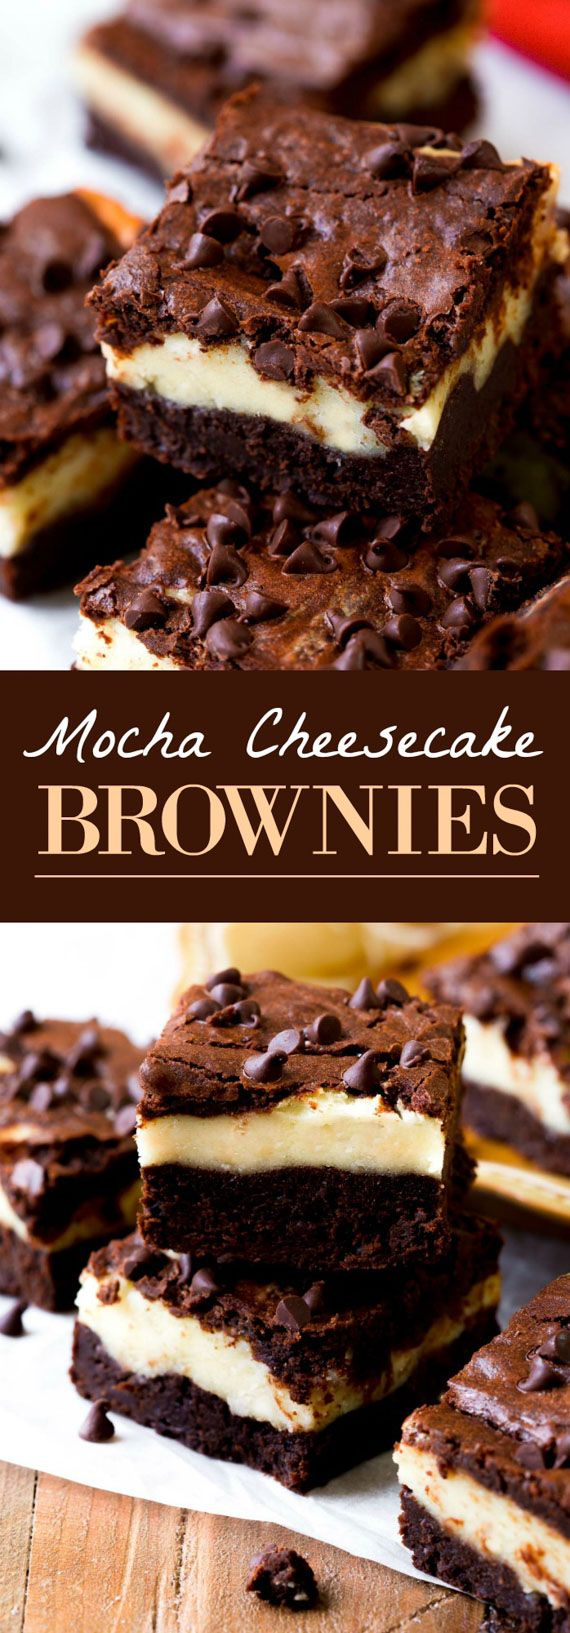 Mocha cheesecake brownies with a homemade mocha brownie layer, cheesecake, white chocolate chips, and more chocolate on top! Recipe on sallysbakingaddiction.com